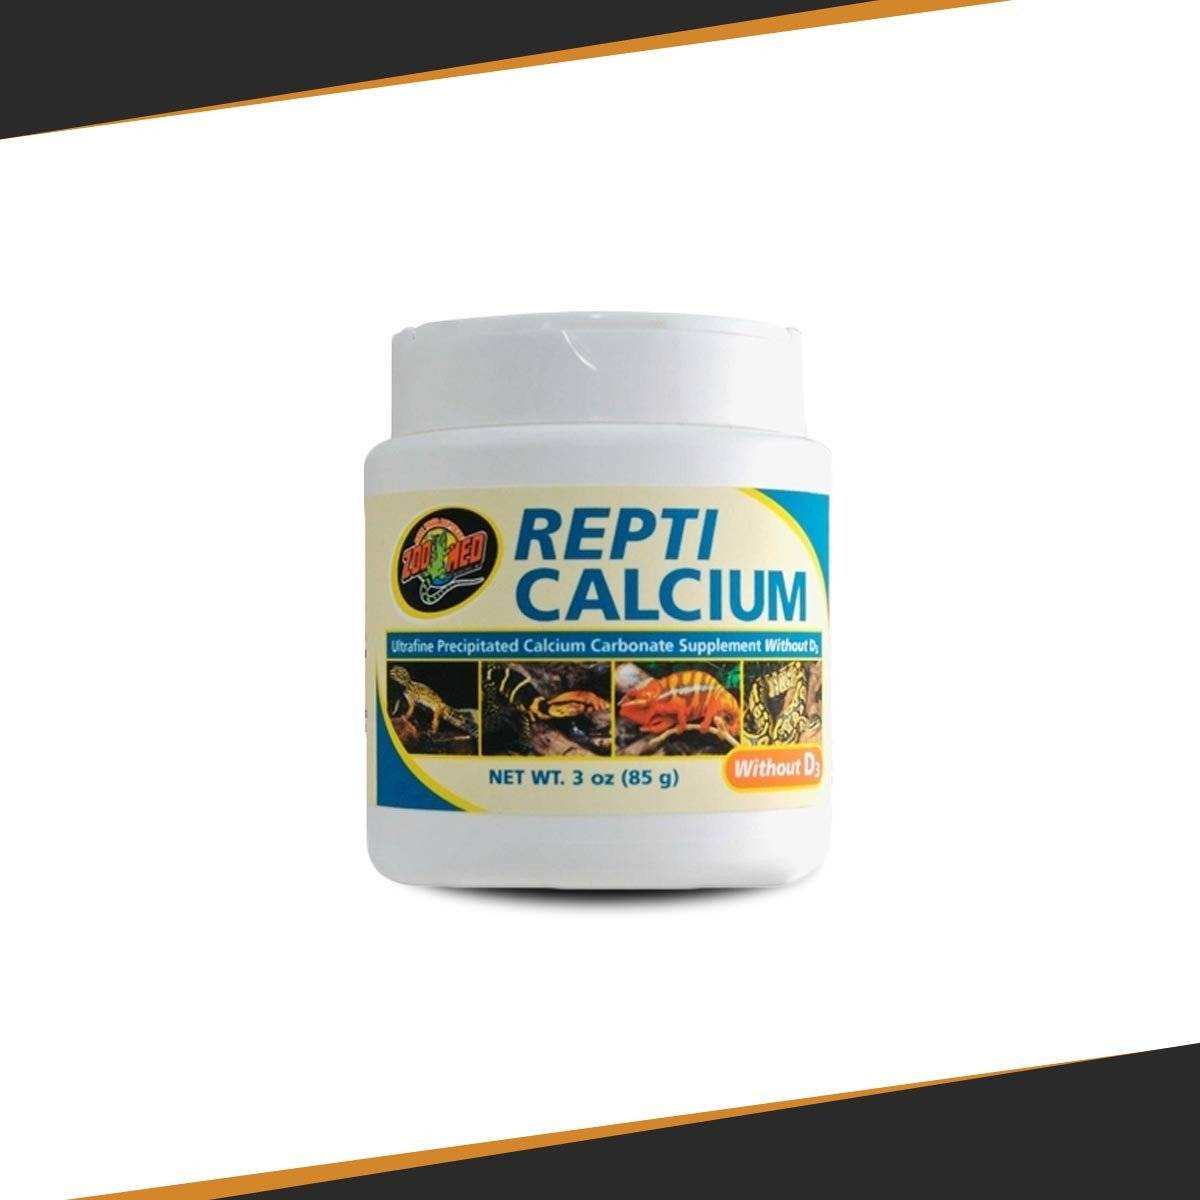 Pack 0.5m² - 2x SpectraBUD X60 - Silent and waterproof - CREE CXB3590